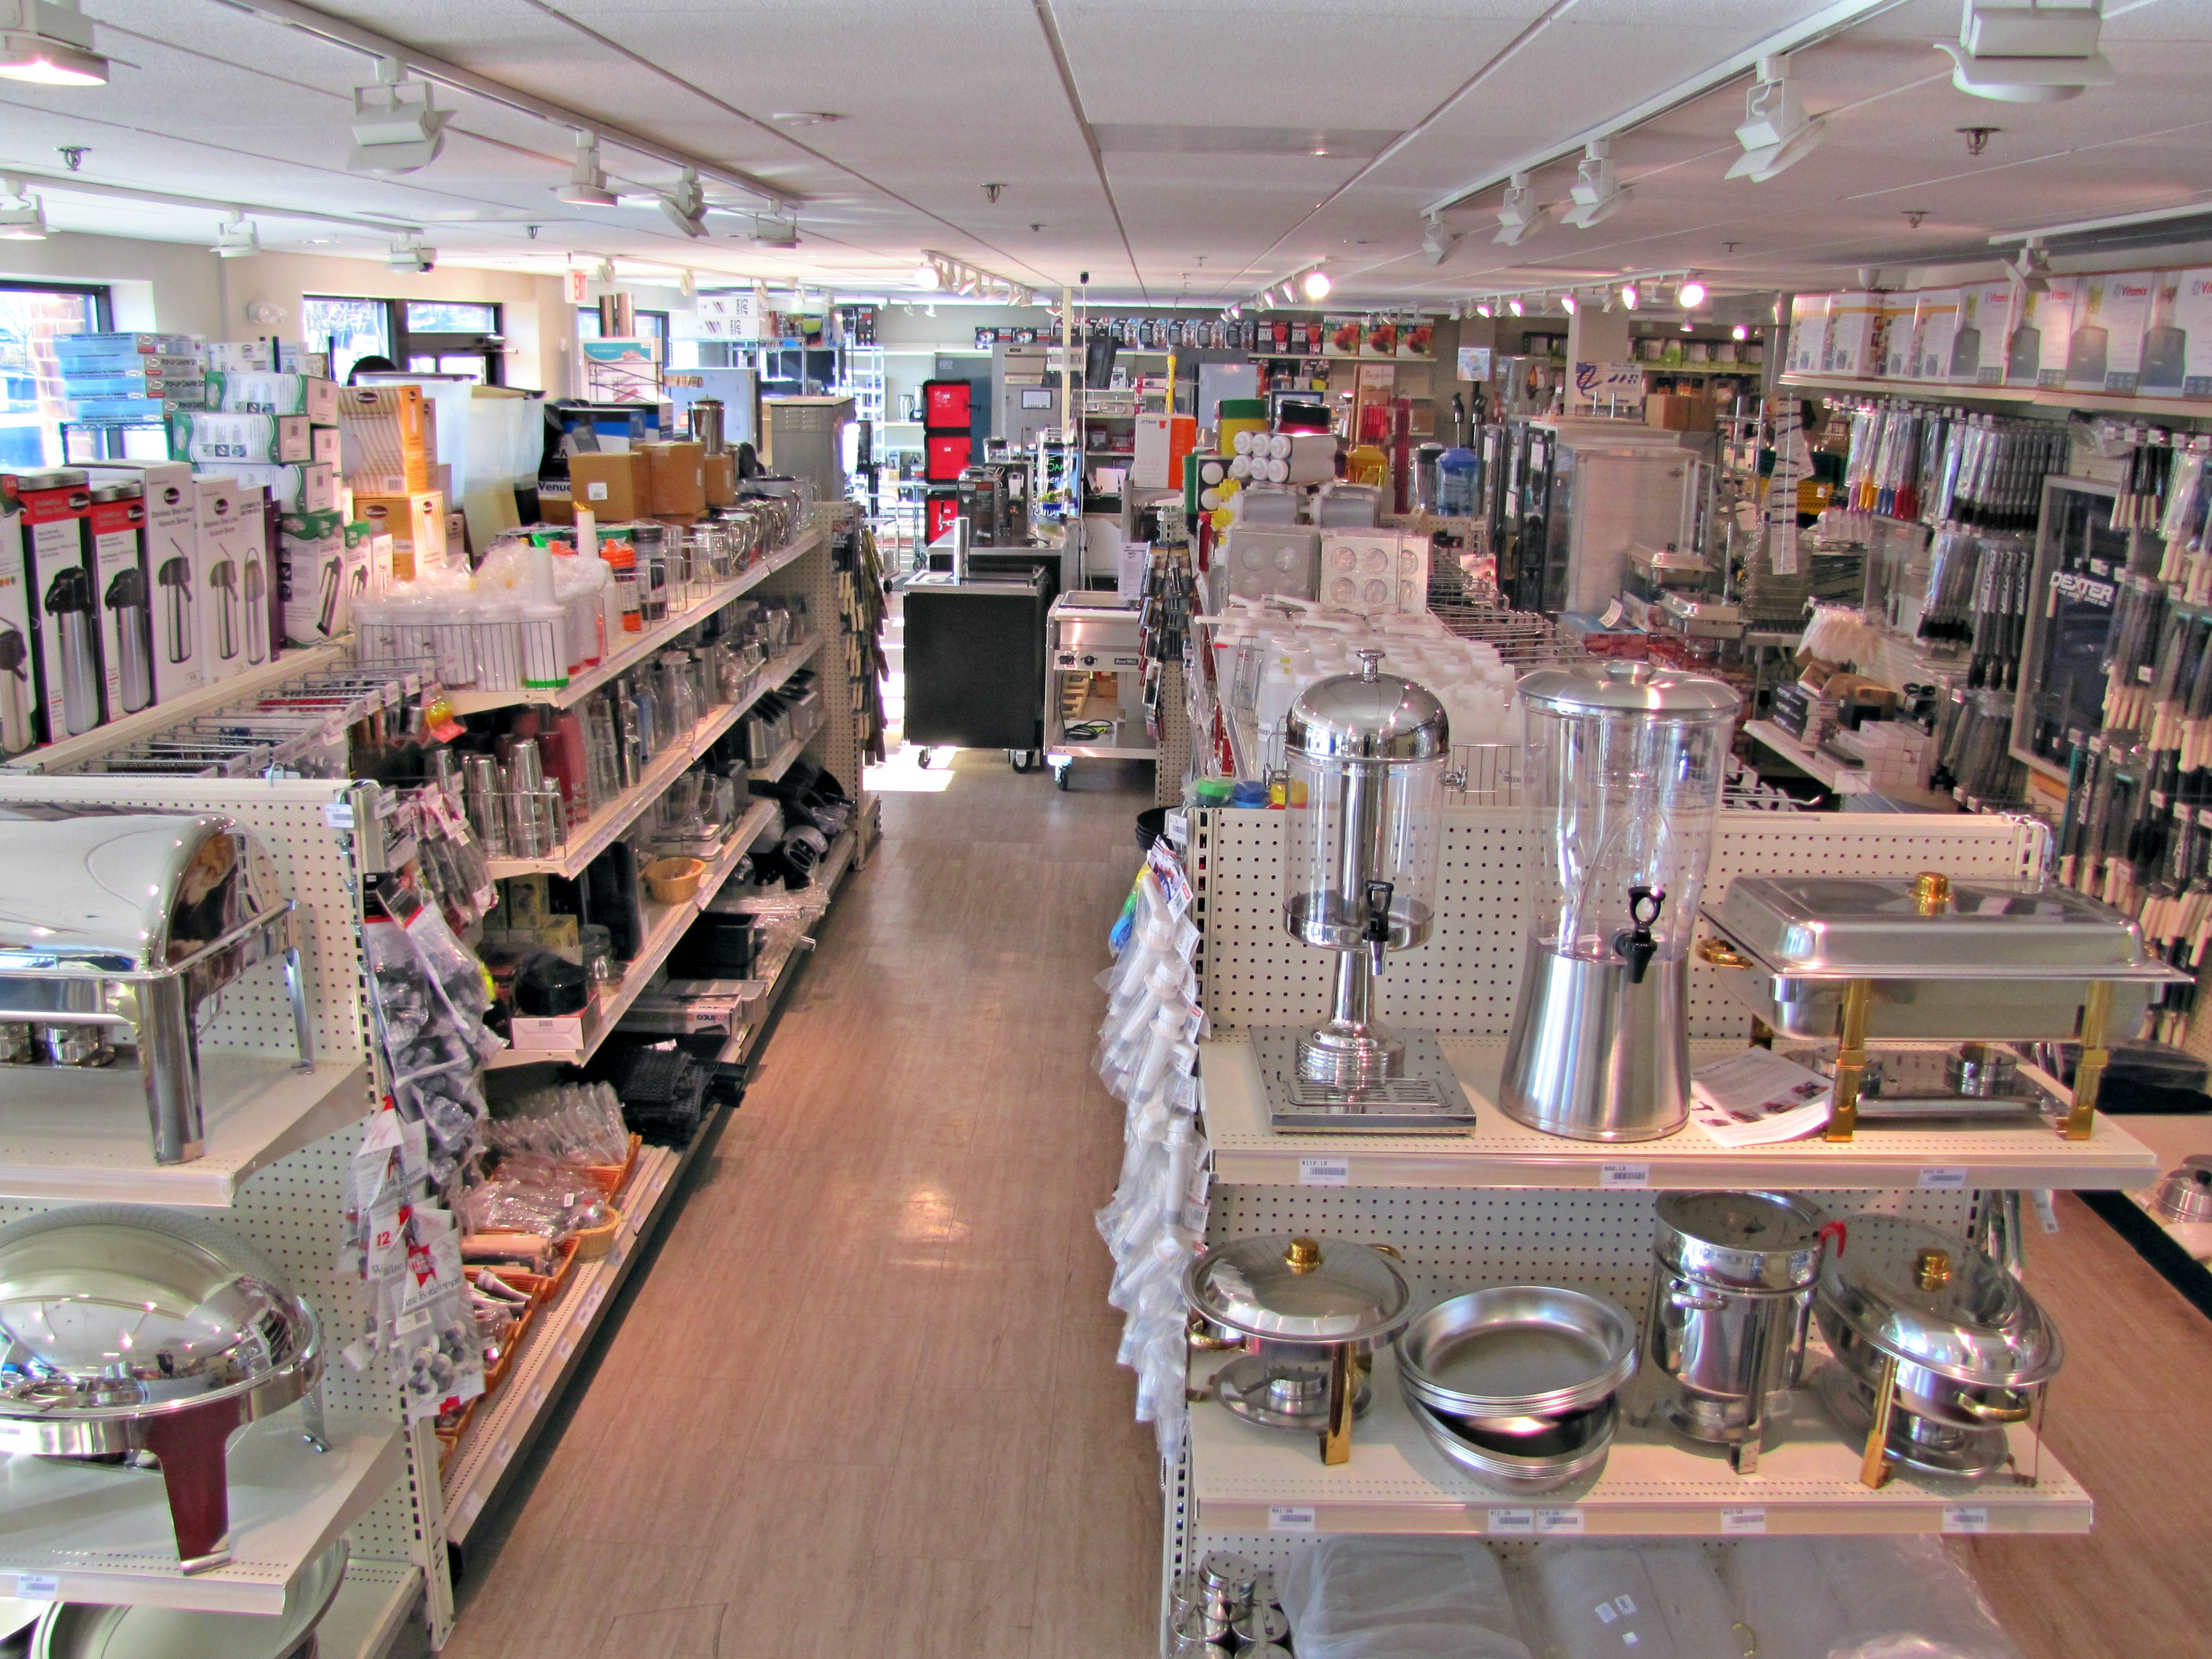 Restaurant Equipment And Supplies In Our Washington D C